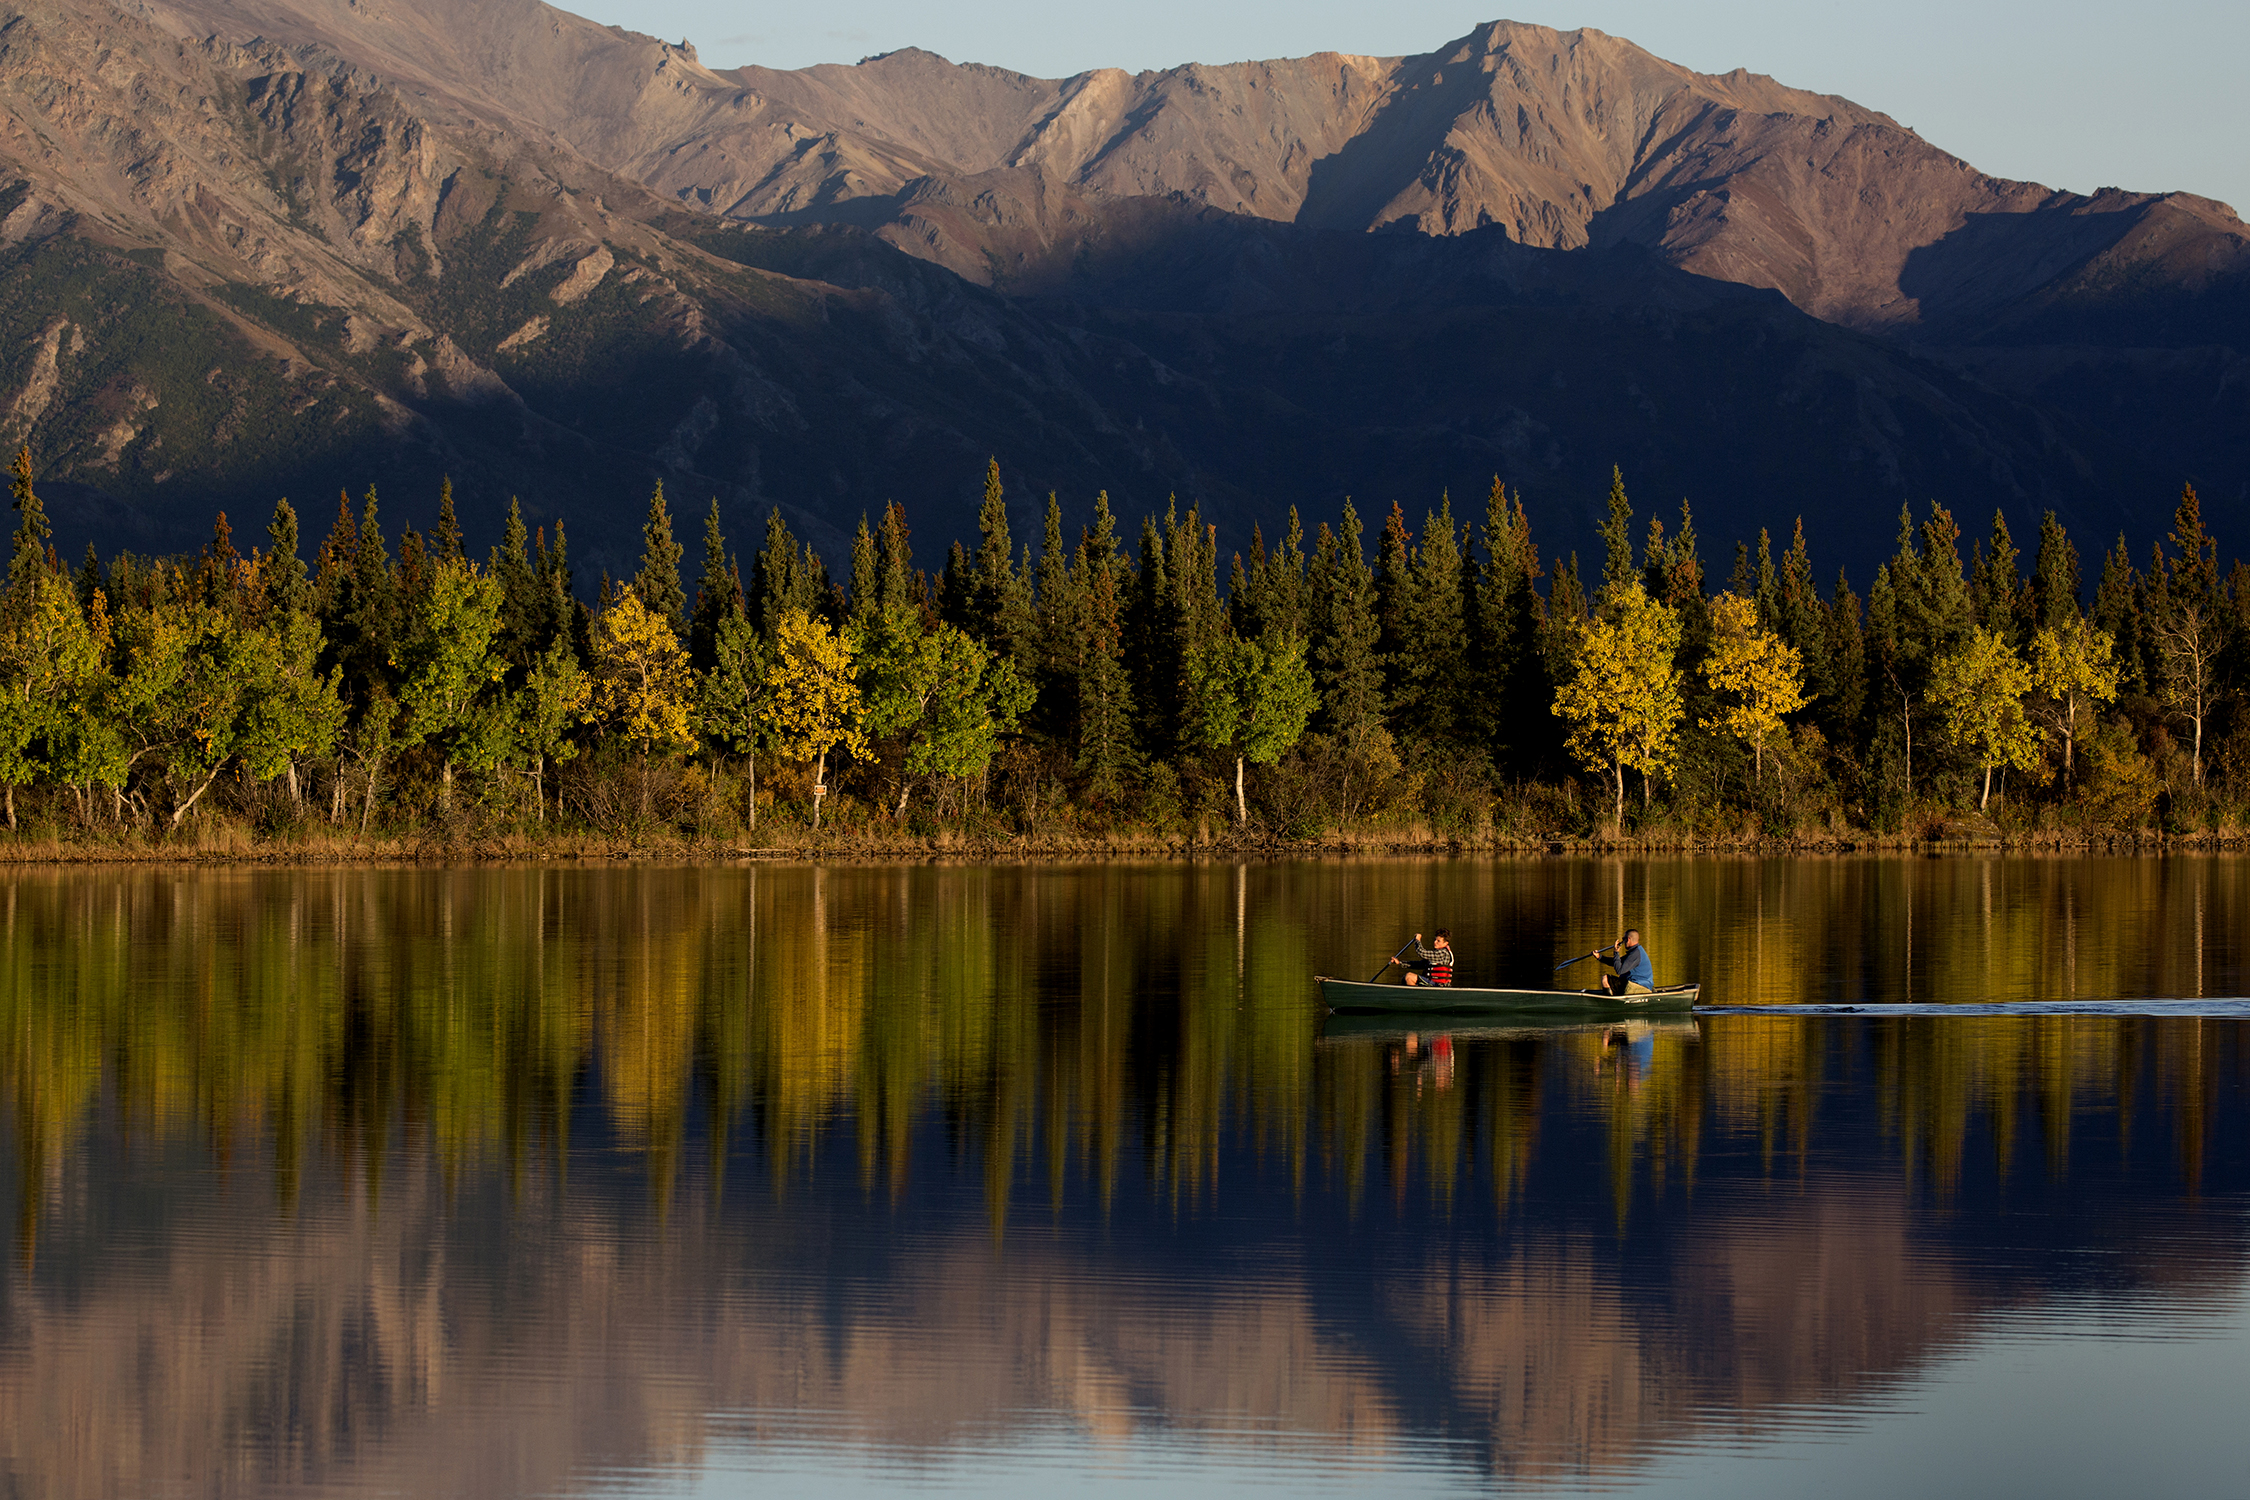 Kayakers glide over calm mirror-like Otto Lake with autumn turning leaves into a yellow hue, located a couple miles outside Healy, Alaska.  © Photo by Gail Fisher